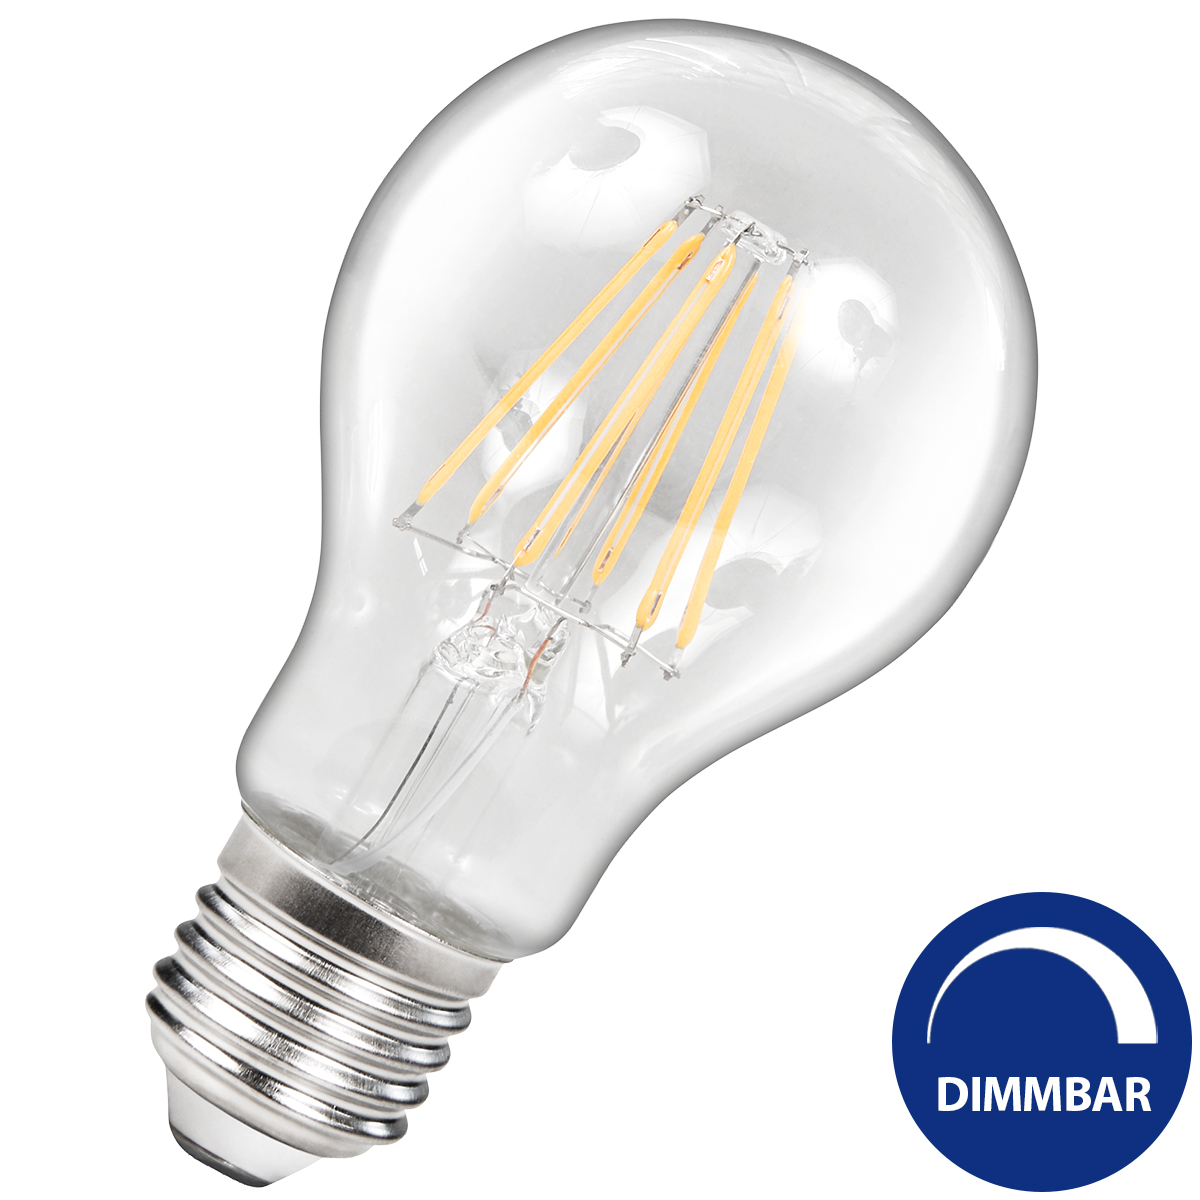 Led Gu4 Dimmbar Dimmbare Led Lampe E27 7 5 W 800 Lumen Warmweiß